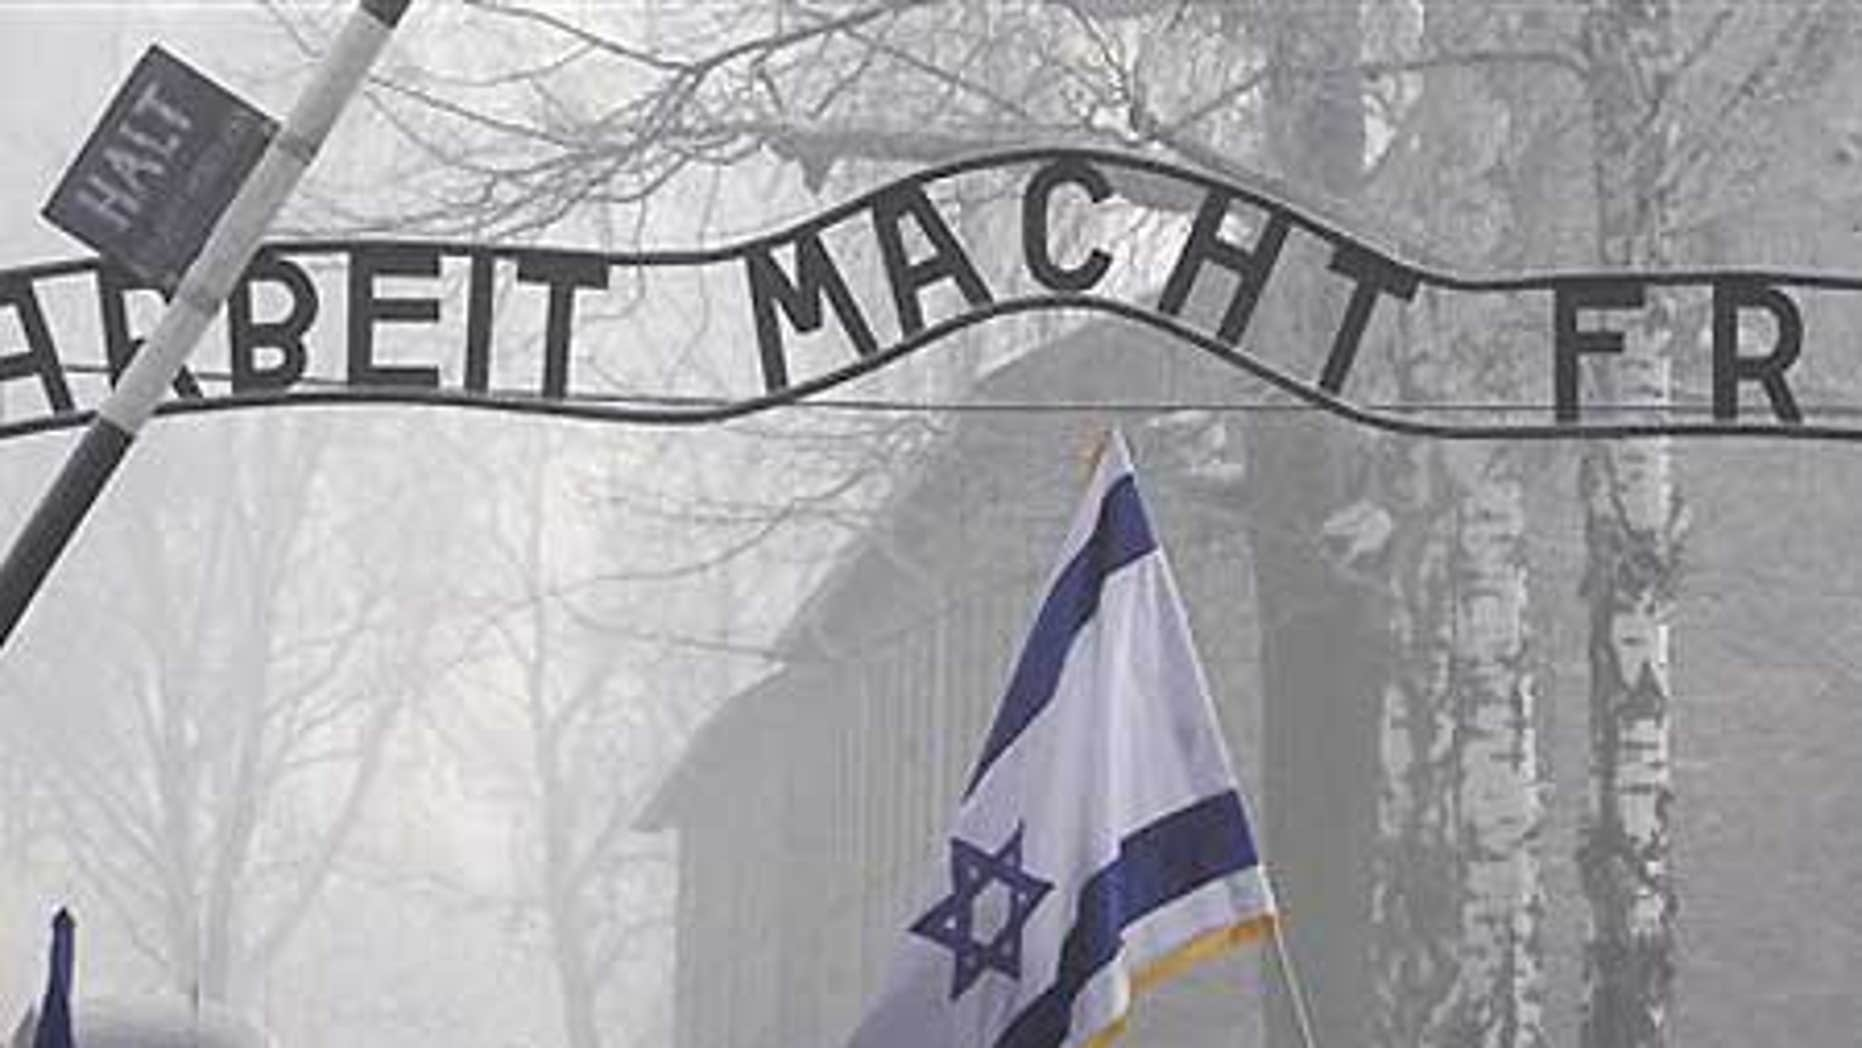 Jan. 27: Visitors under the infamous Arbeit Macht Frei 'Work Sets You Free' sign over the main gate of Auschwitz.